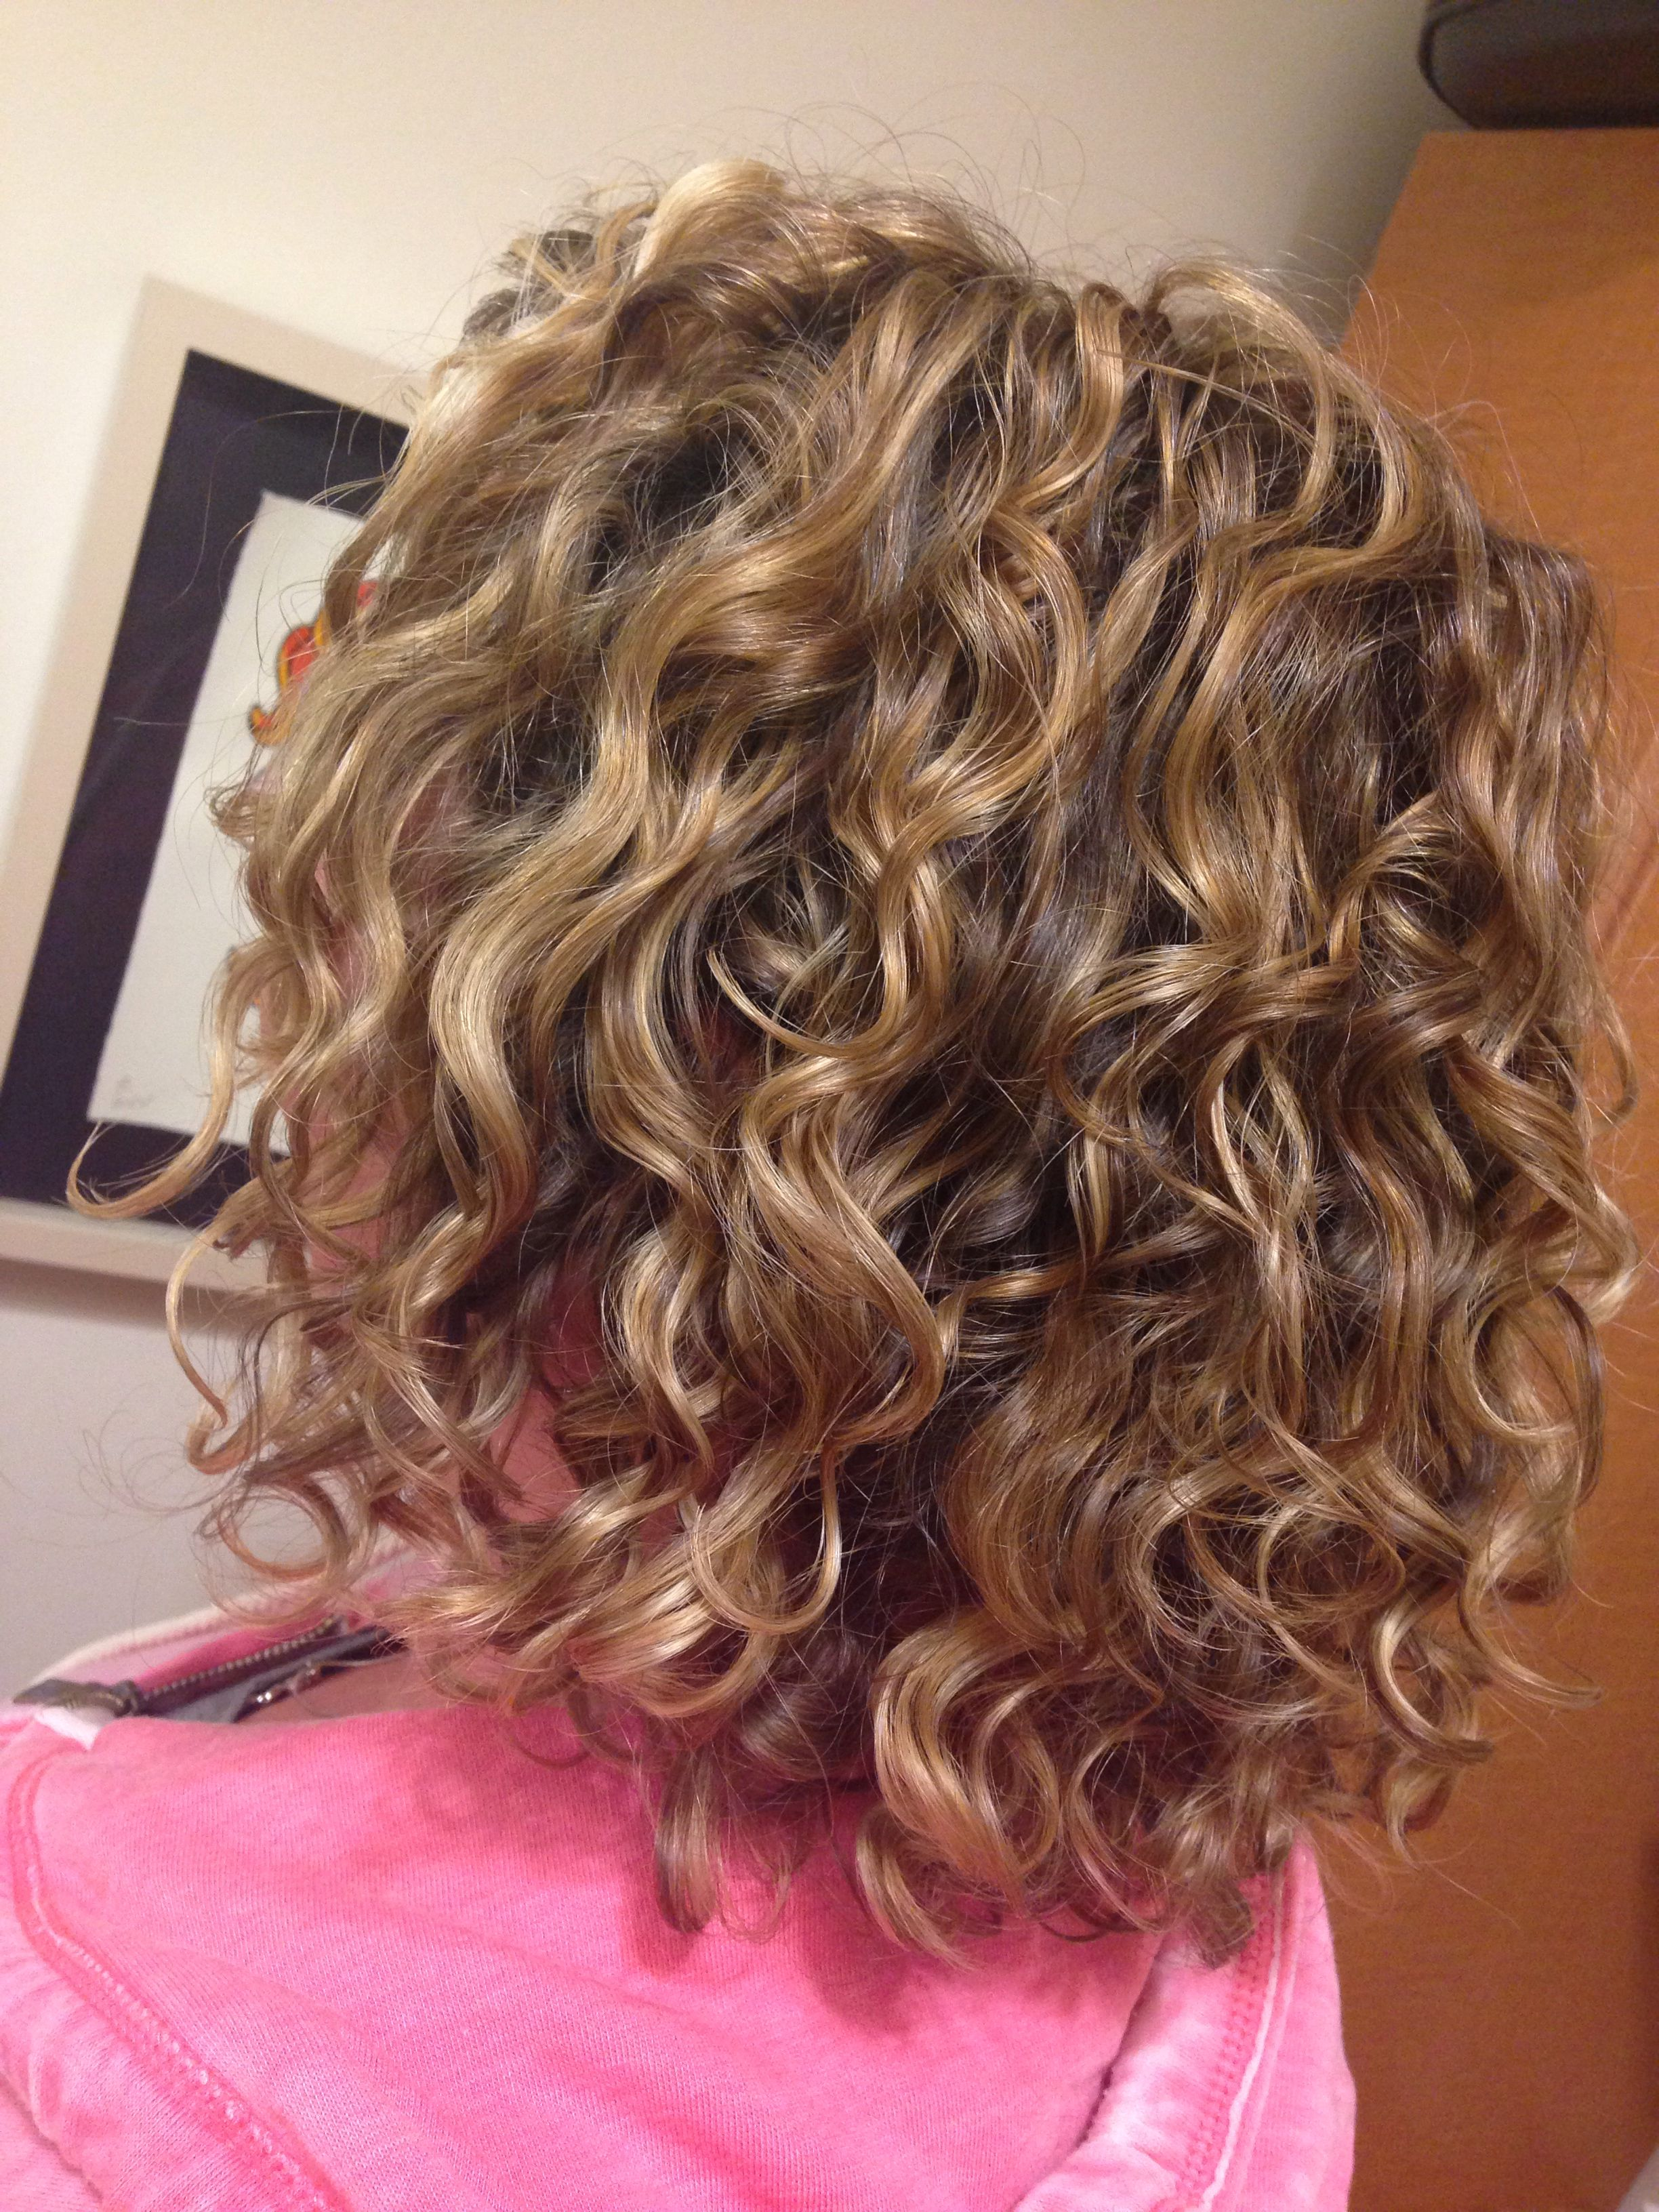 Embrace Your Natural Curls Curls By Cass Hair Styles Natural Hair Salons Medium Length Hair Styles